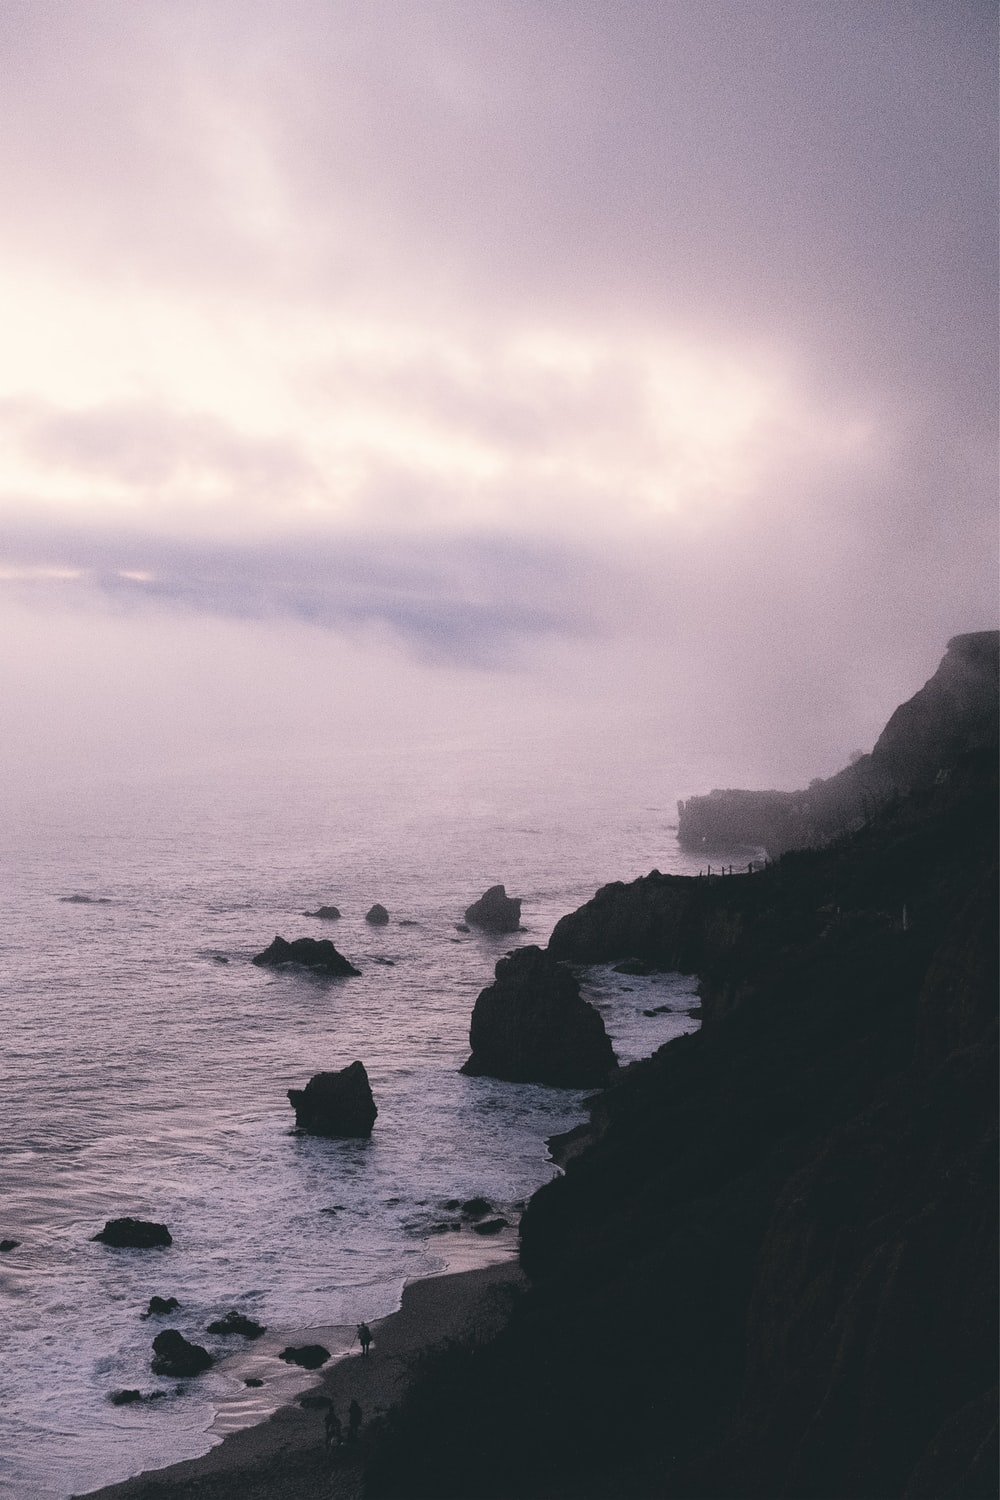 rock formations near sea during foggy weather